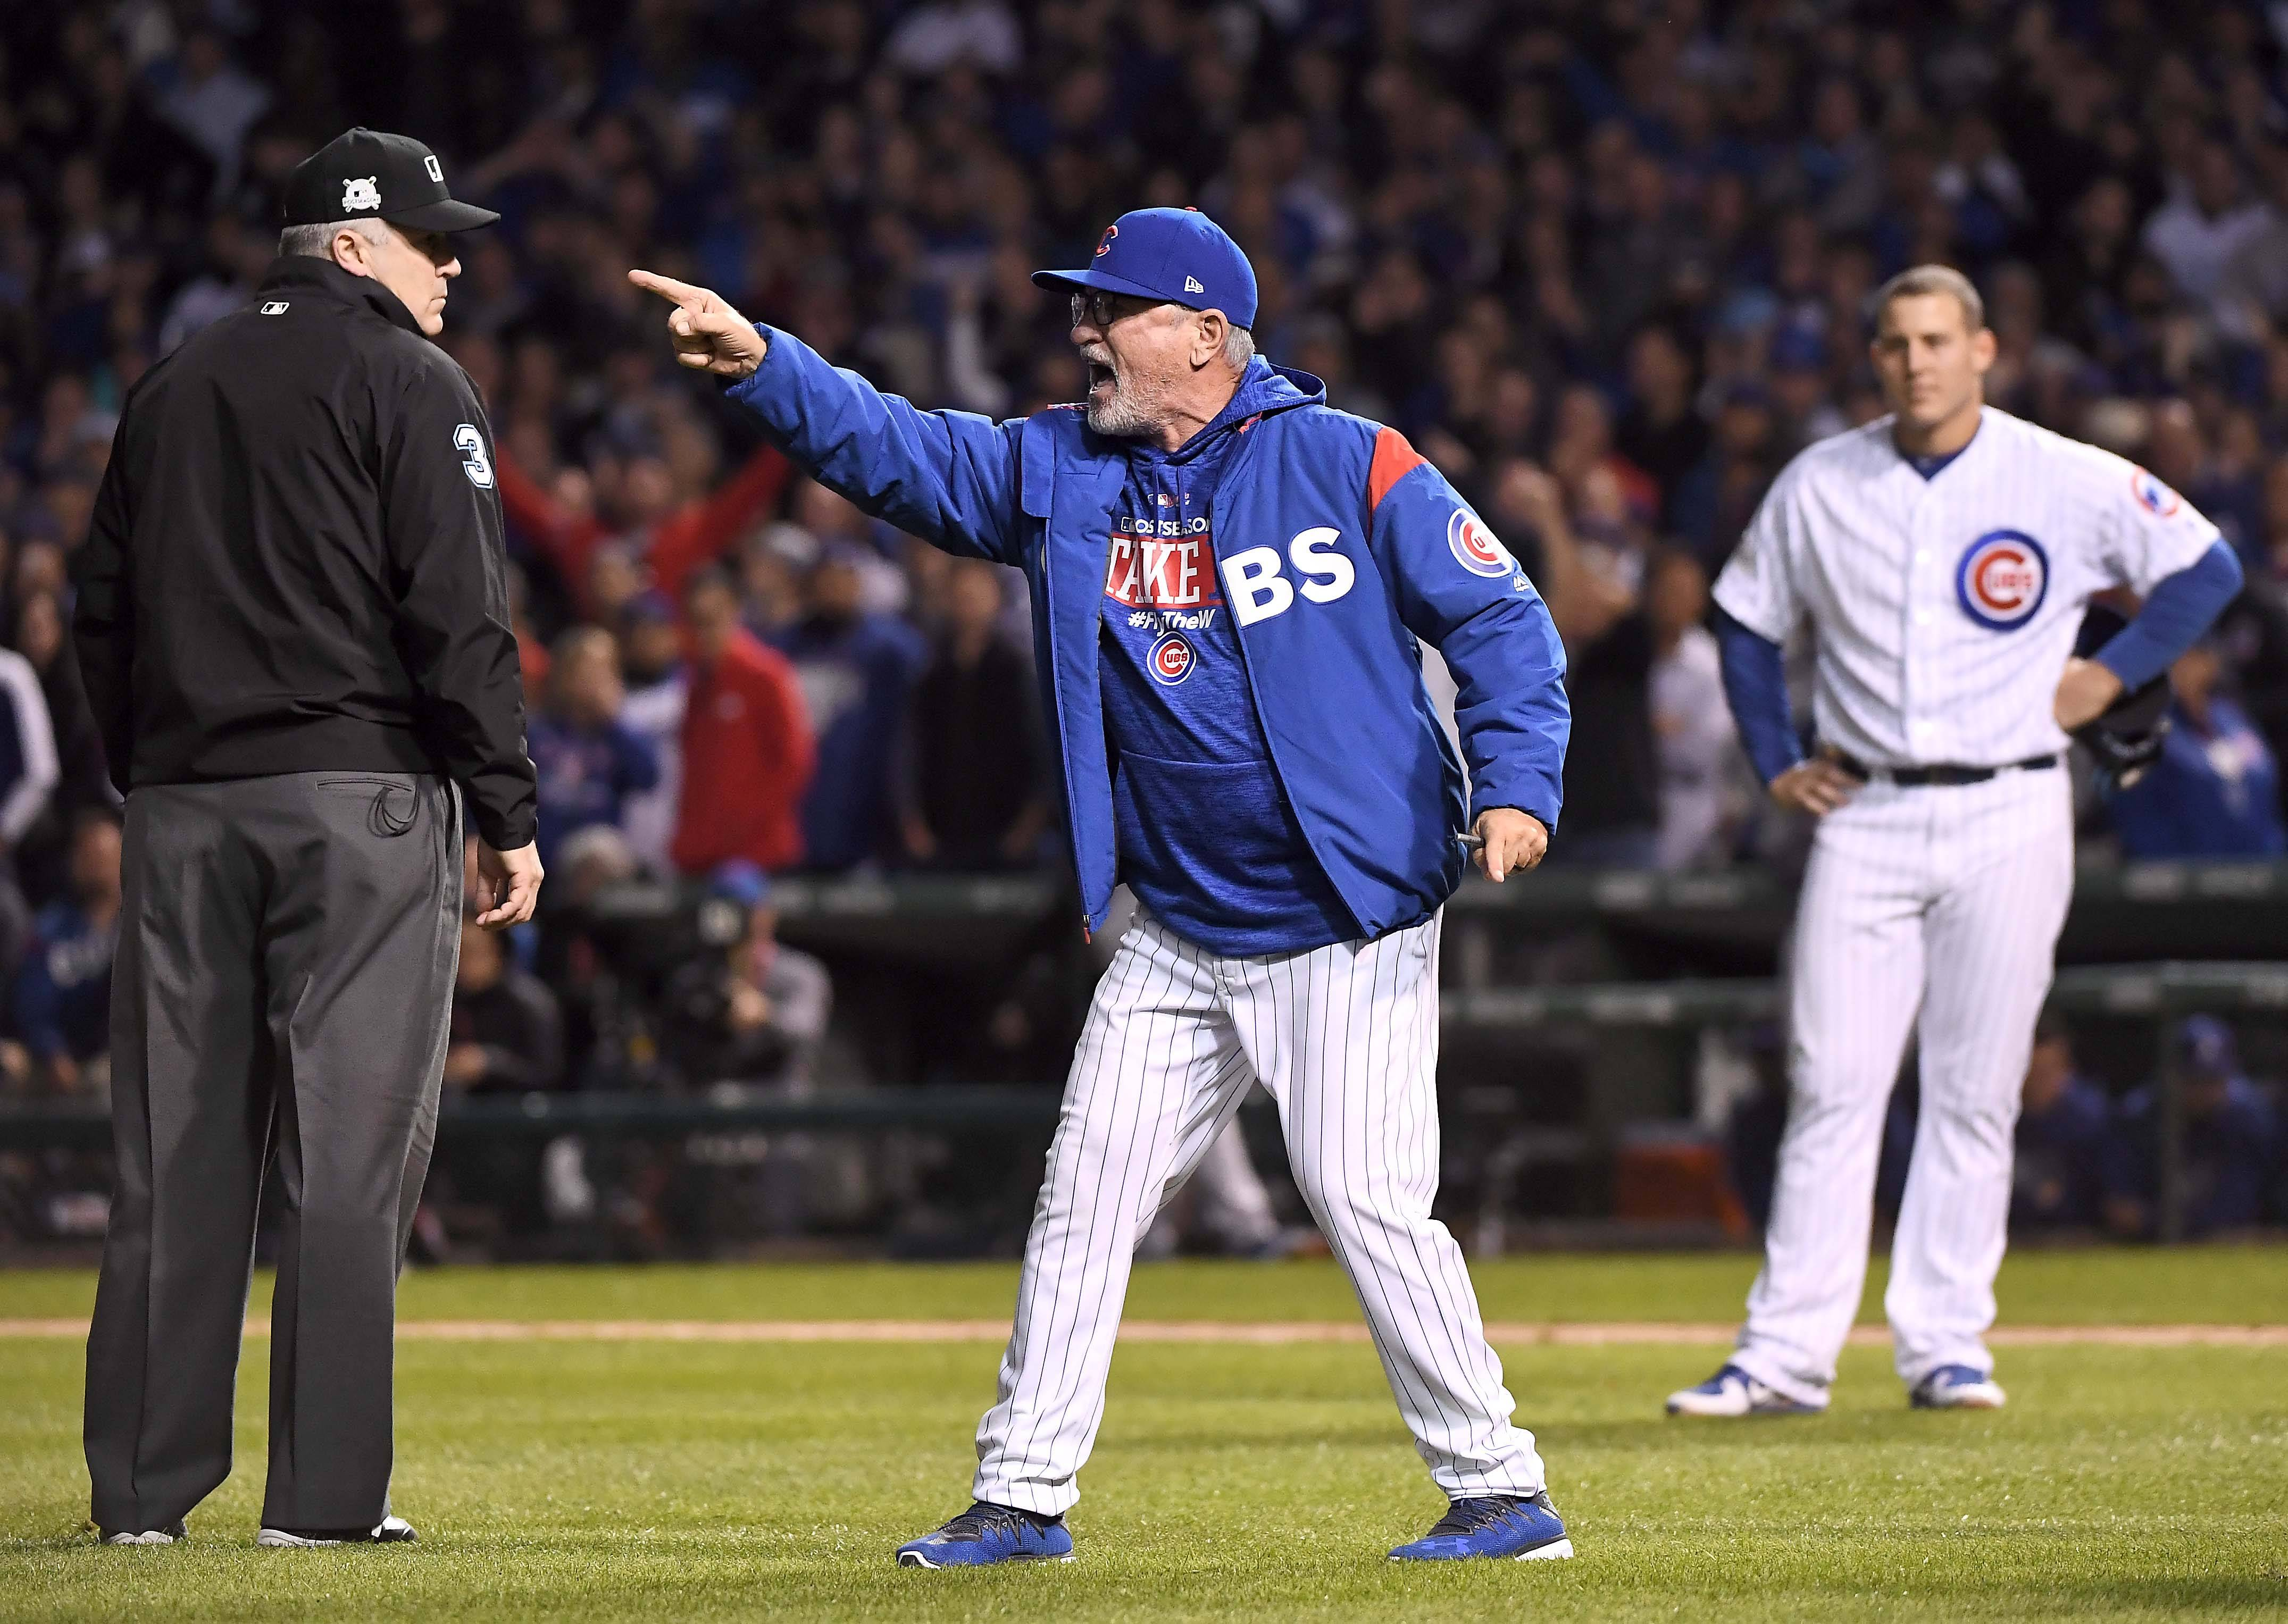 John Starks/jstarks@dailyherald.comChicago Cubs manager Joe Maddon (70) argues a swing call in the 8th inning during Game 4 of the National League Championship Series, Oct, 18 2017, at Wrigley Field in Chicago. Maddon (70) was thrown out of the game.